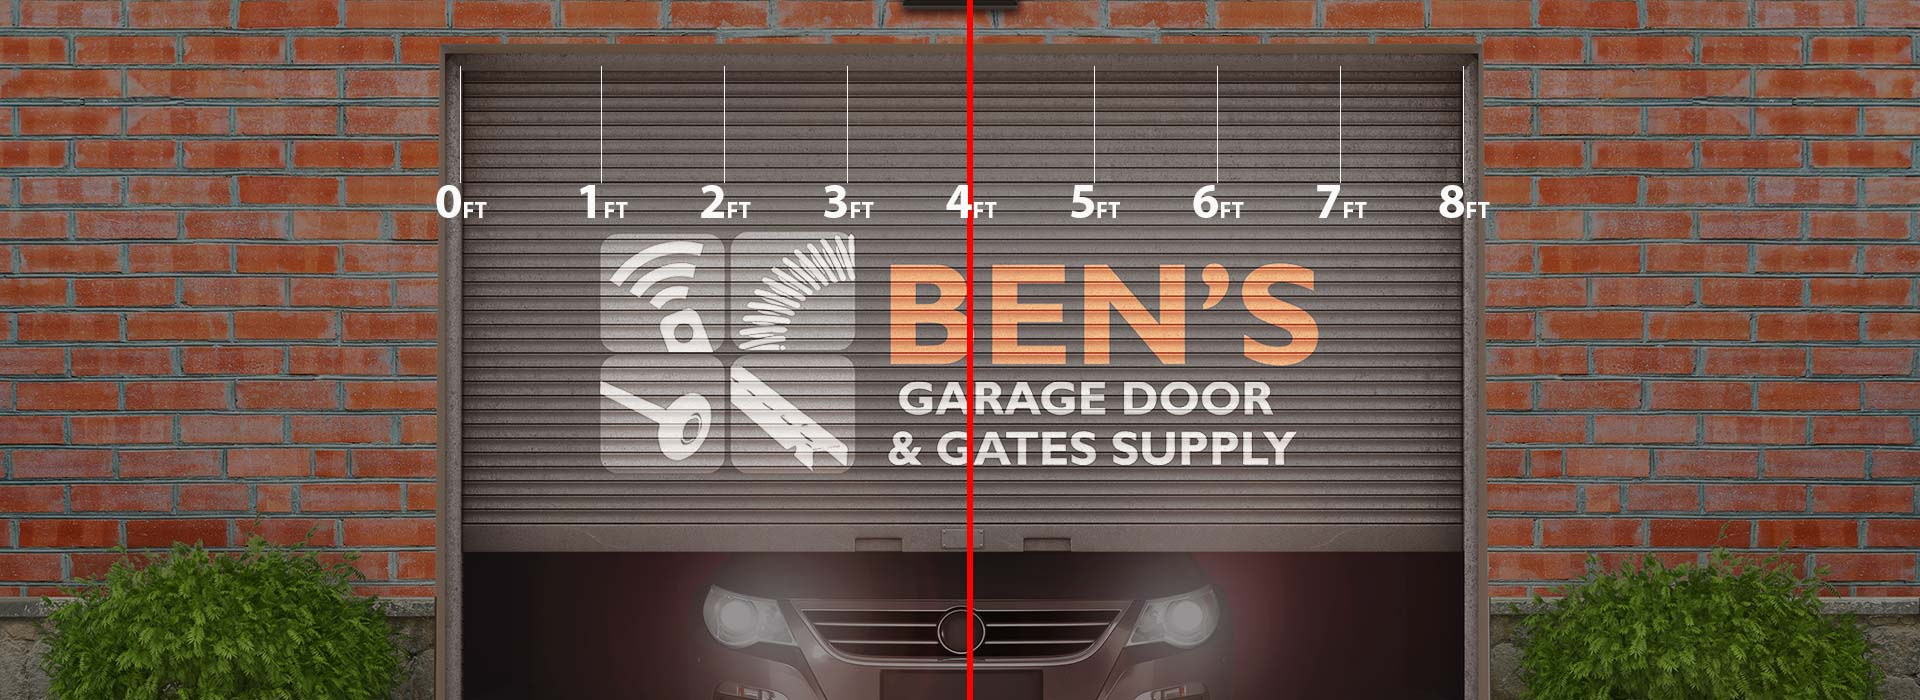 install garage door opener in the center